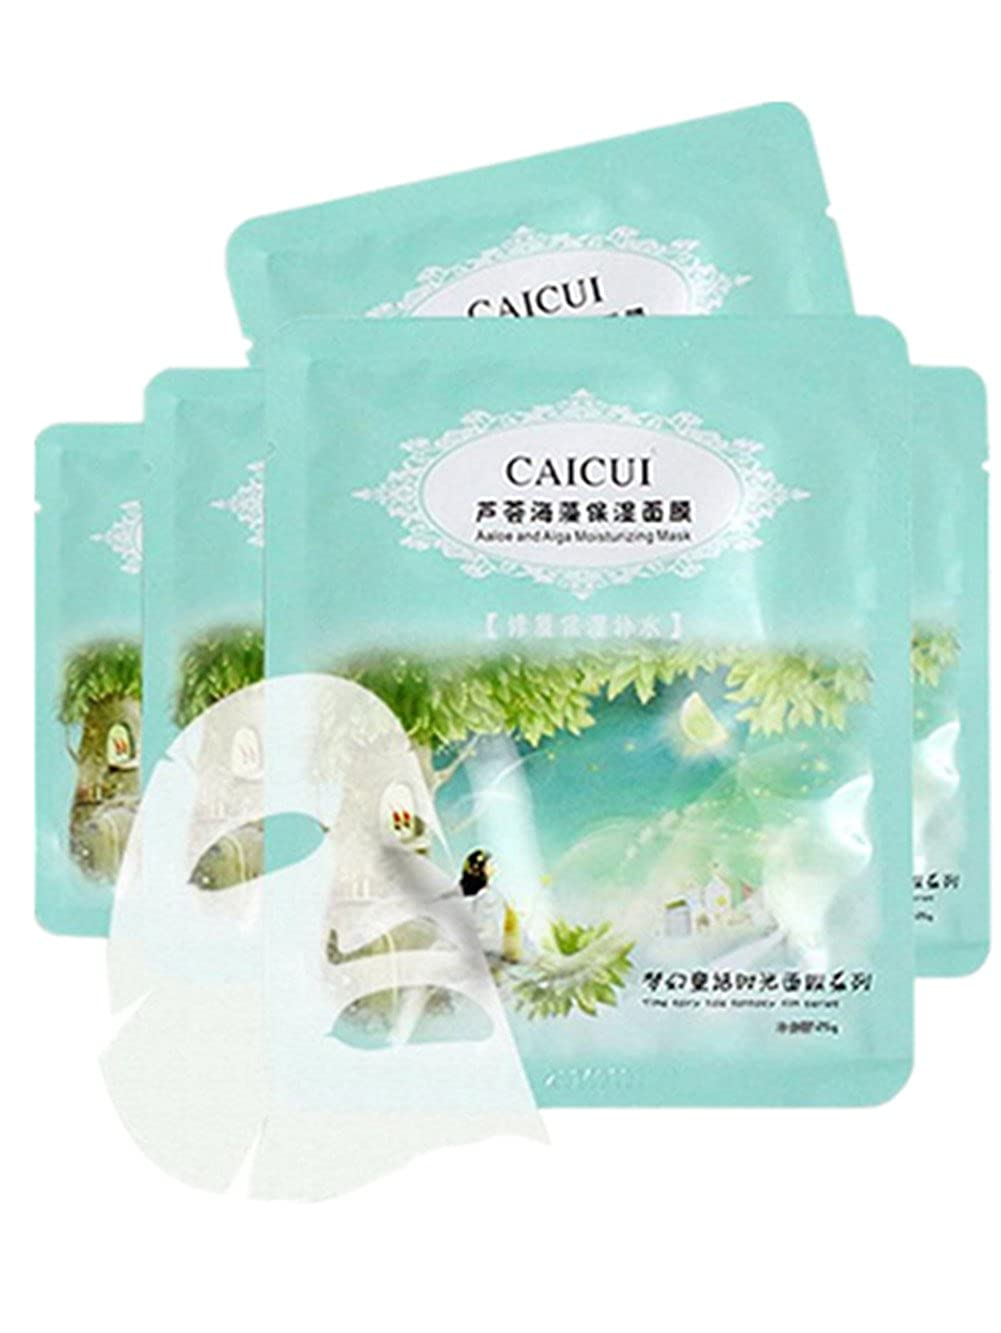 Amazon.com: Sunward seaweed Intensive Hydrating Facial Mask Skin to Reduce  the Appearance of Fine Lines,Wrinkles Face Mask: Clothing